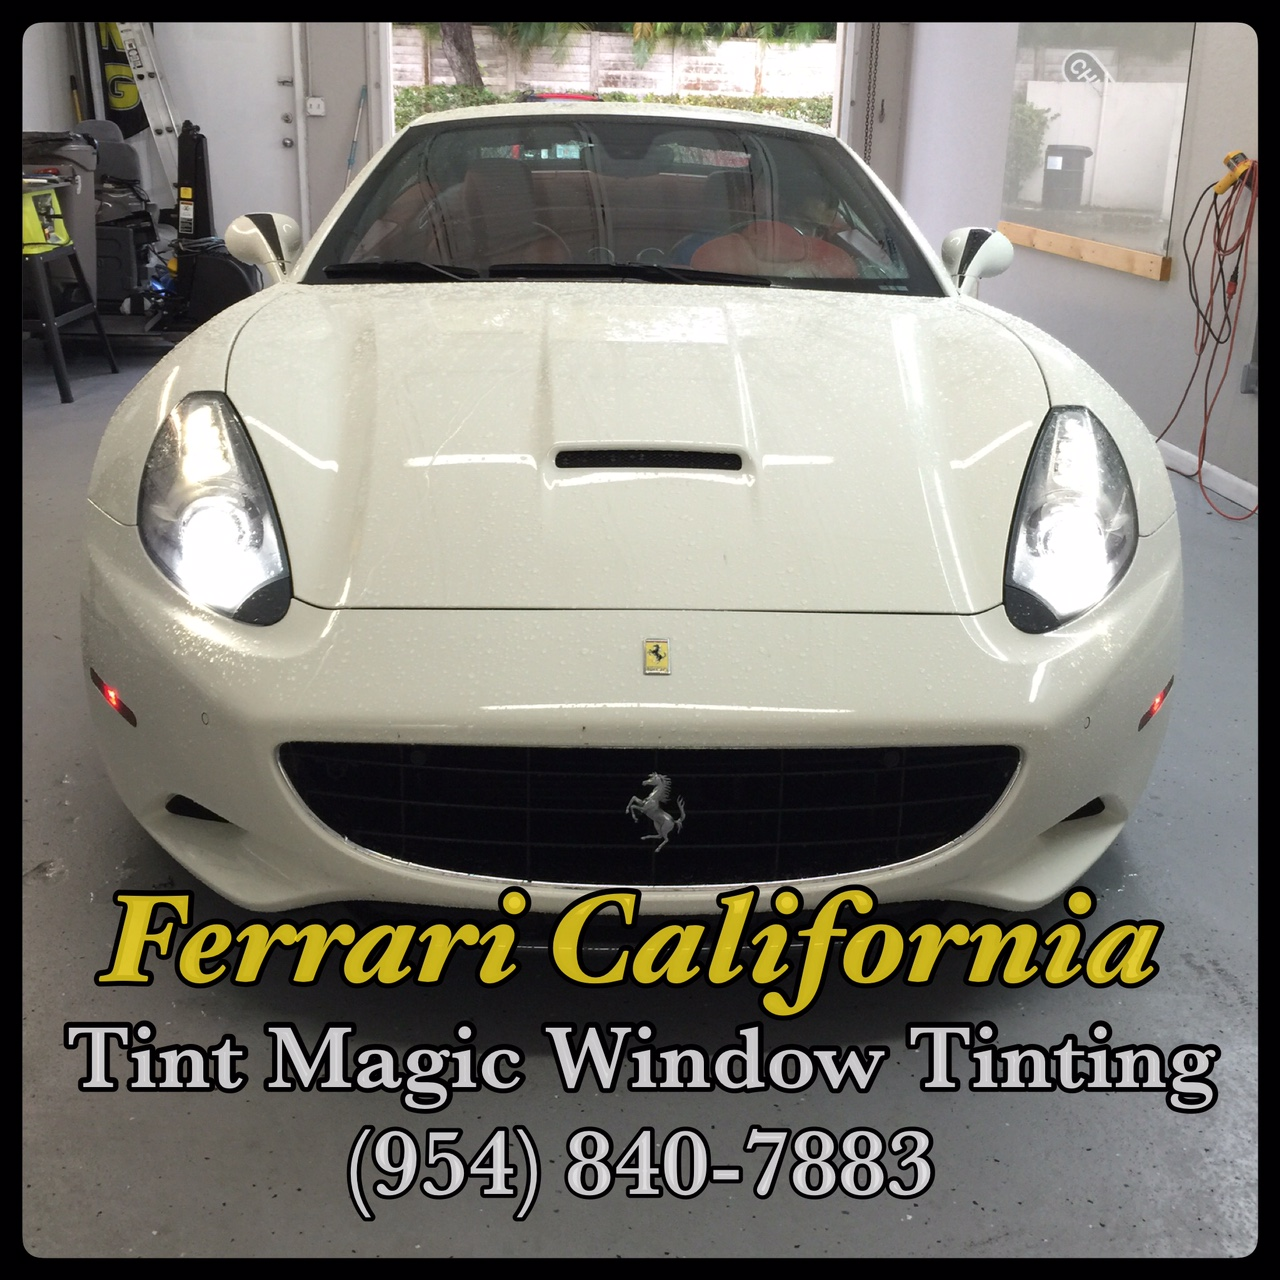 Ferrari California at Tint Magic Window Tinting